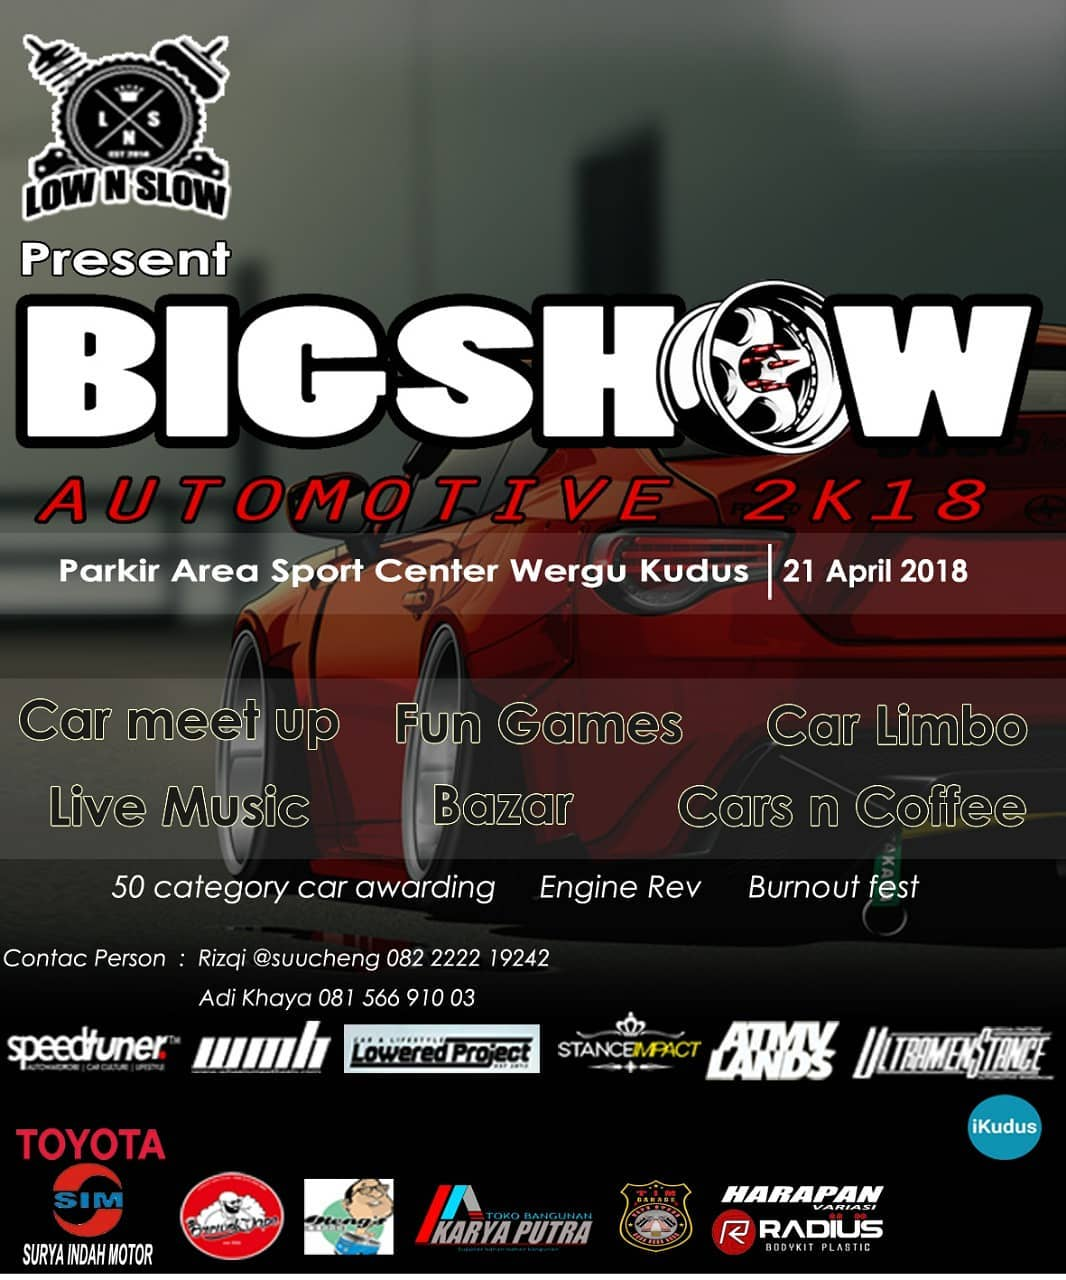 EVENT KUDUS - BIGSHOW AUTOMOTIVE 2K18